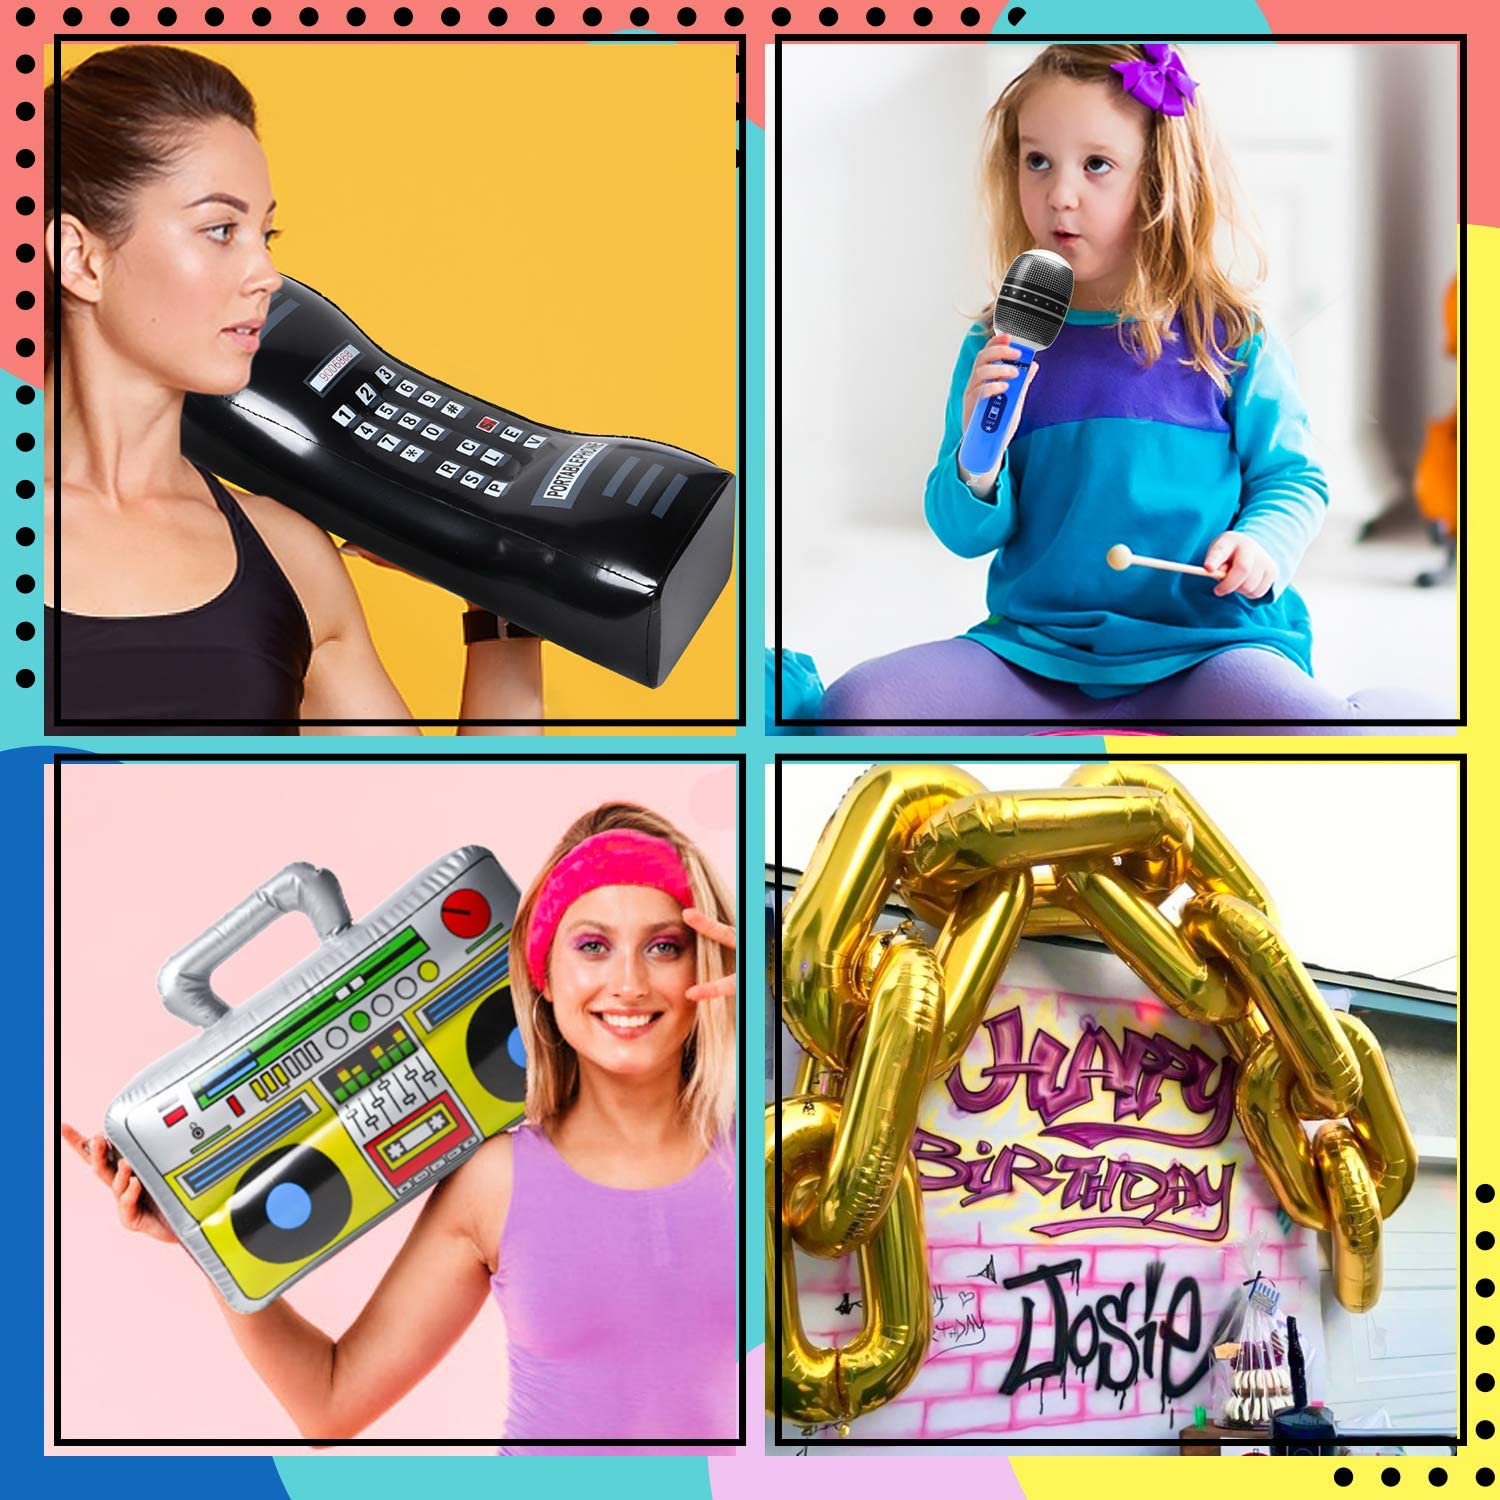 WATINC 28Pcs Inflatable Rock Star Toy Set Hip Hop Theme Birthday Rock and Roll Party Supplies Inflatable Boombox Mobile Phone Guitar Microphone and Gold Foil Chain Balloons for 80s 90s Party Decor